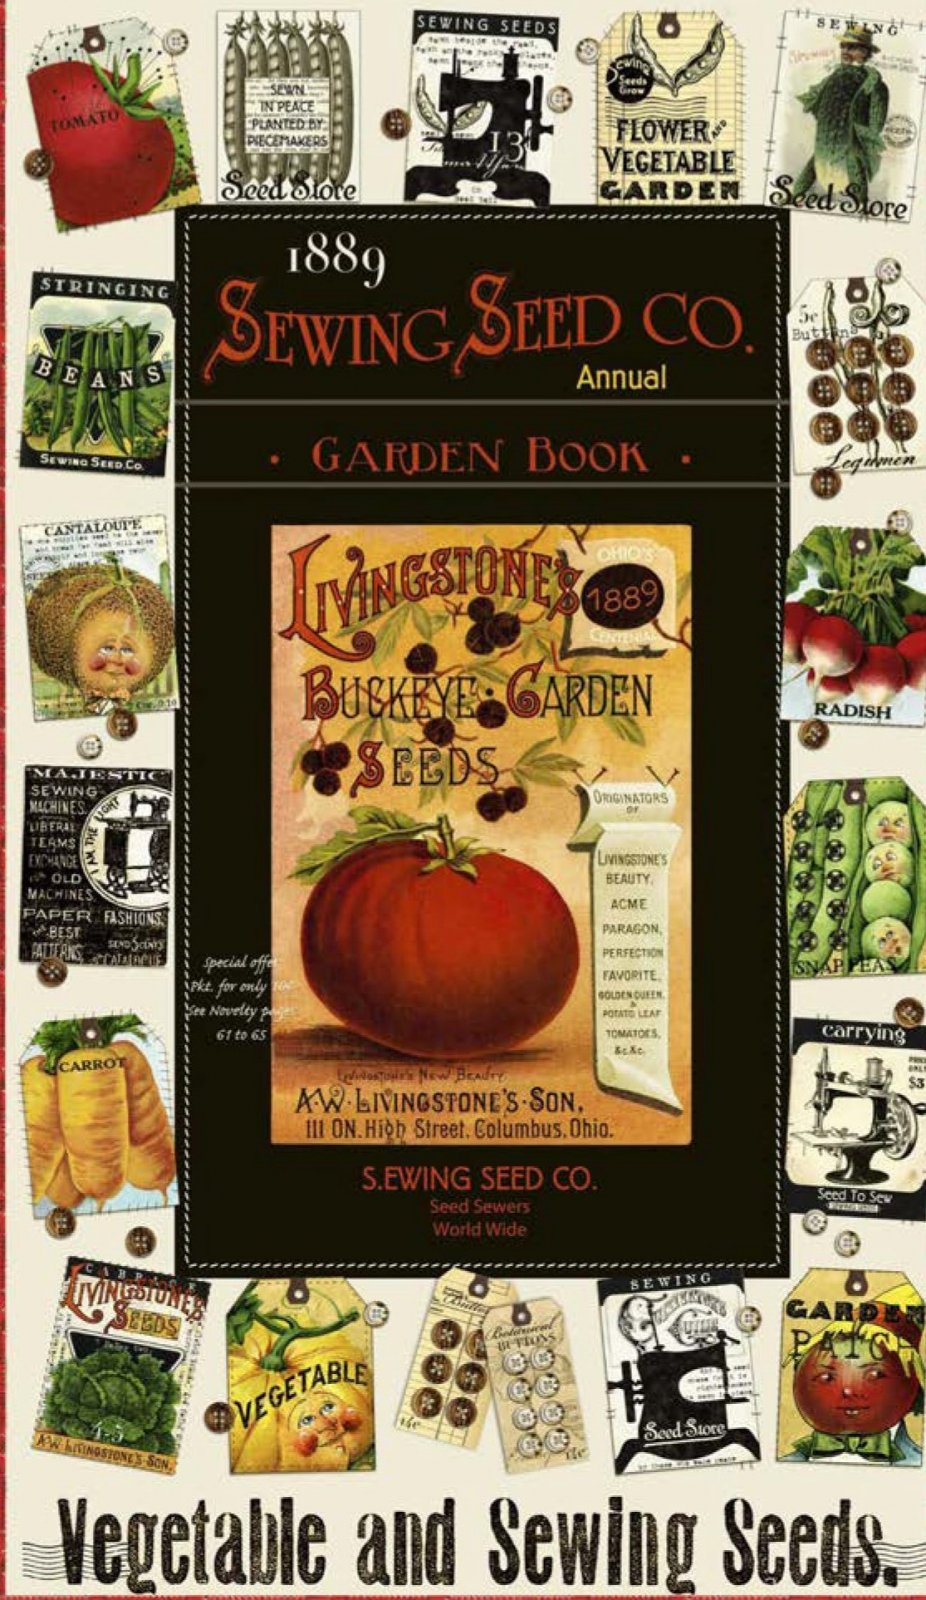 Vegetable and Sewing Seeds Panel